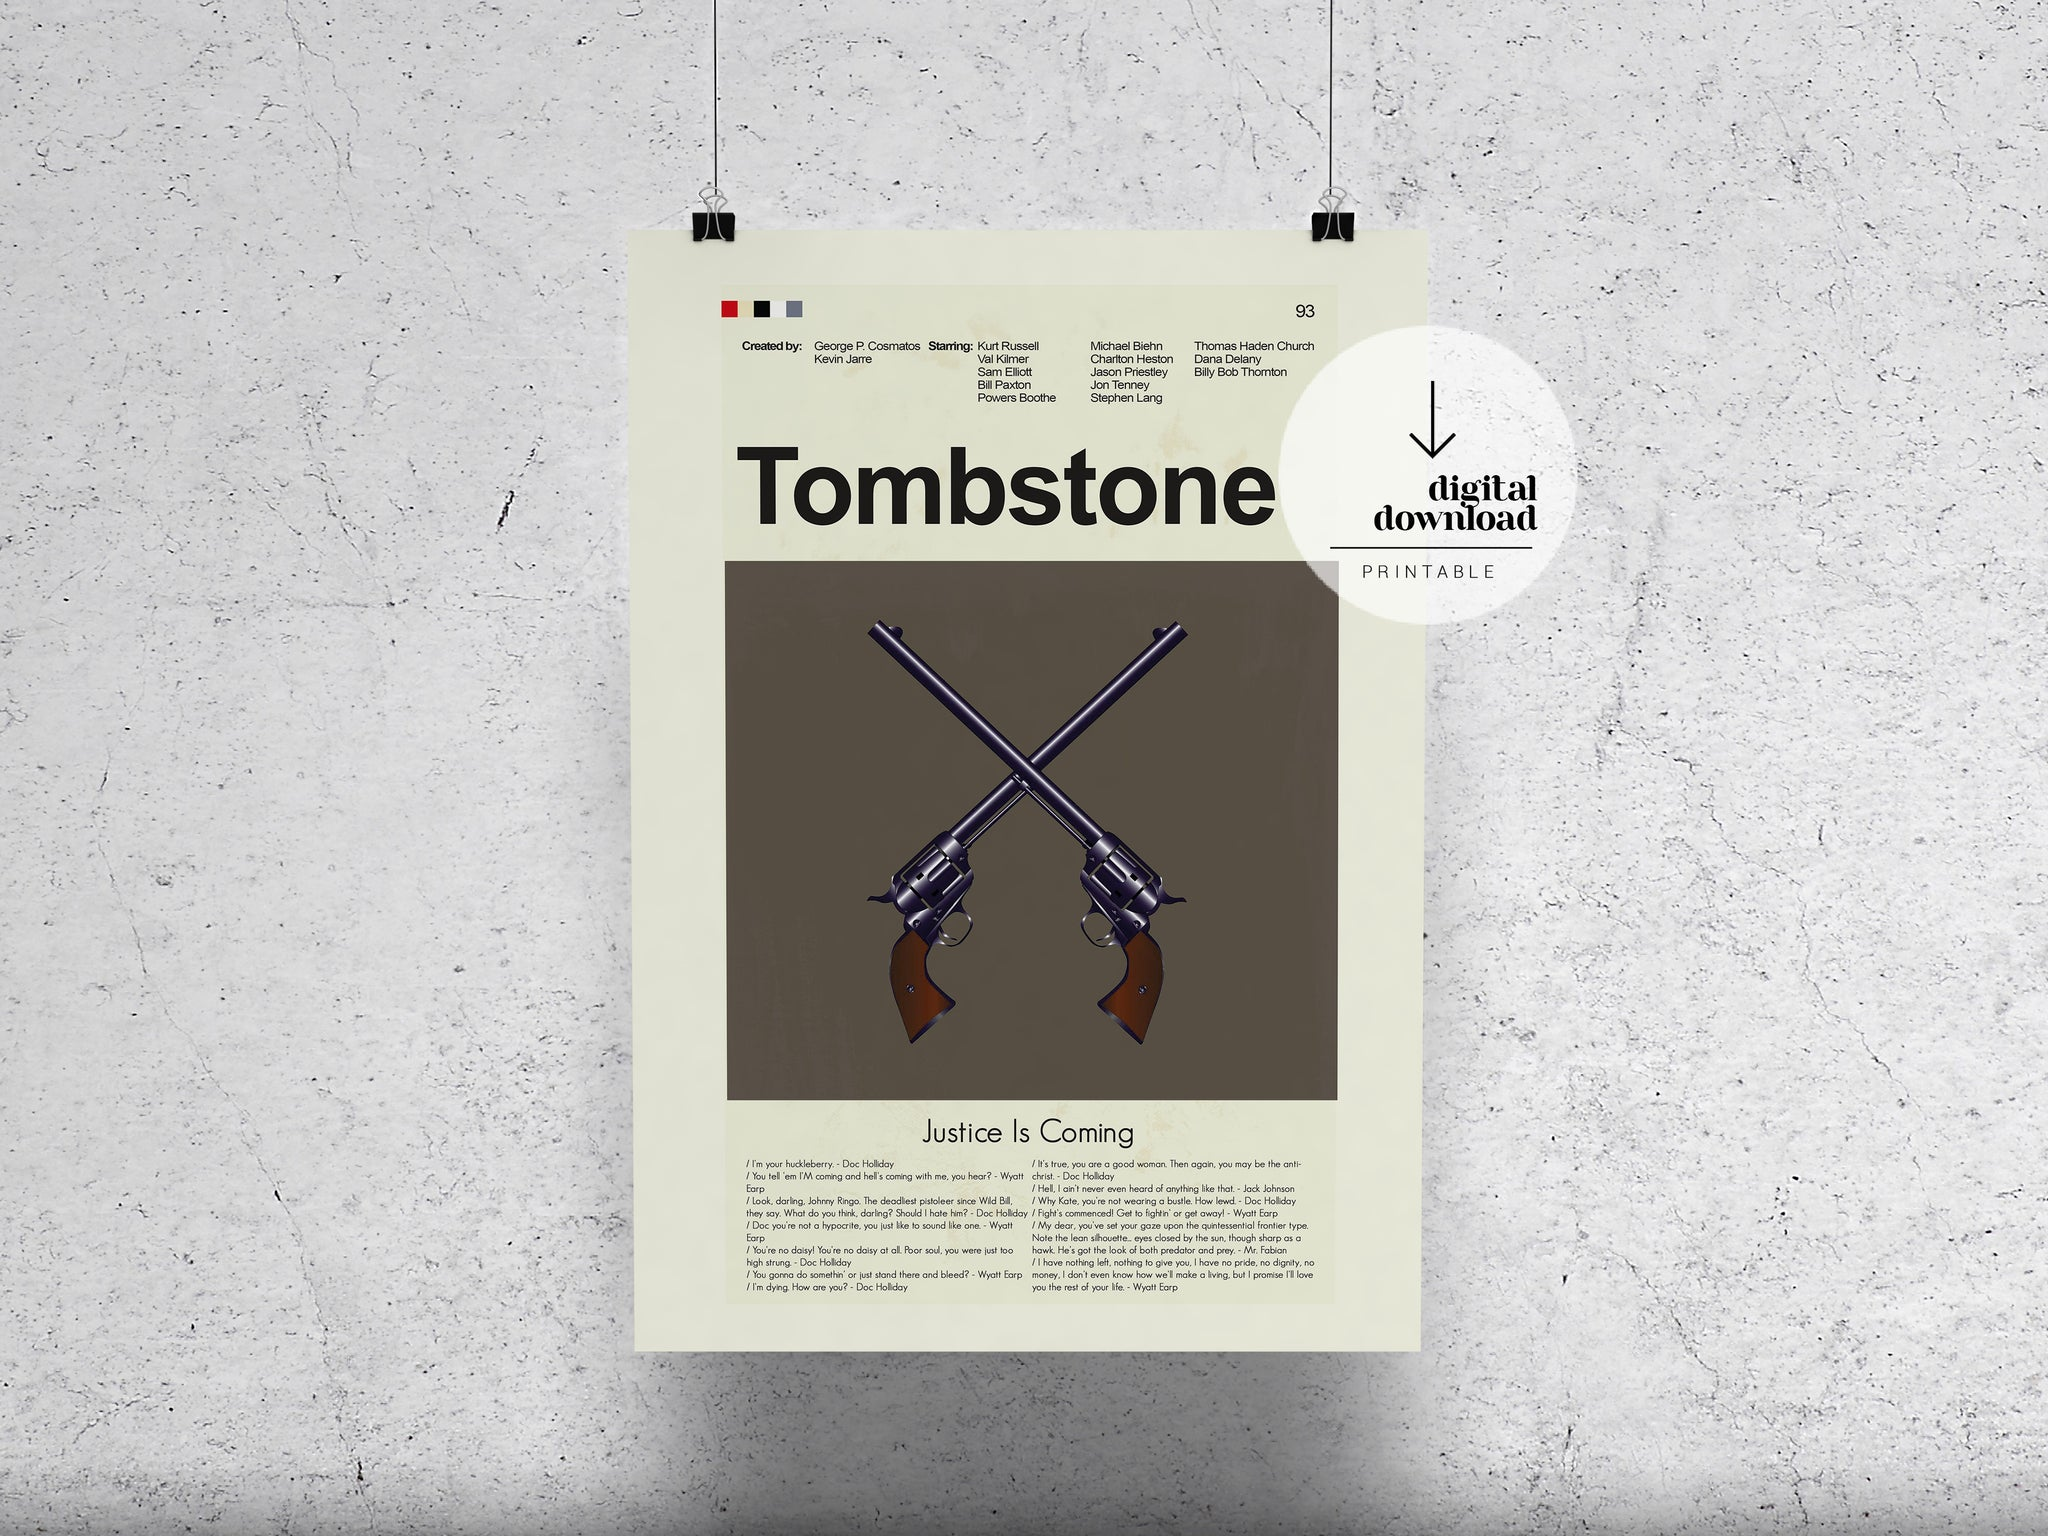 Tombstone | DIGITAL DOWNLOAD